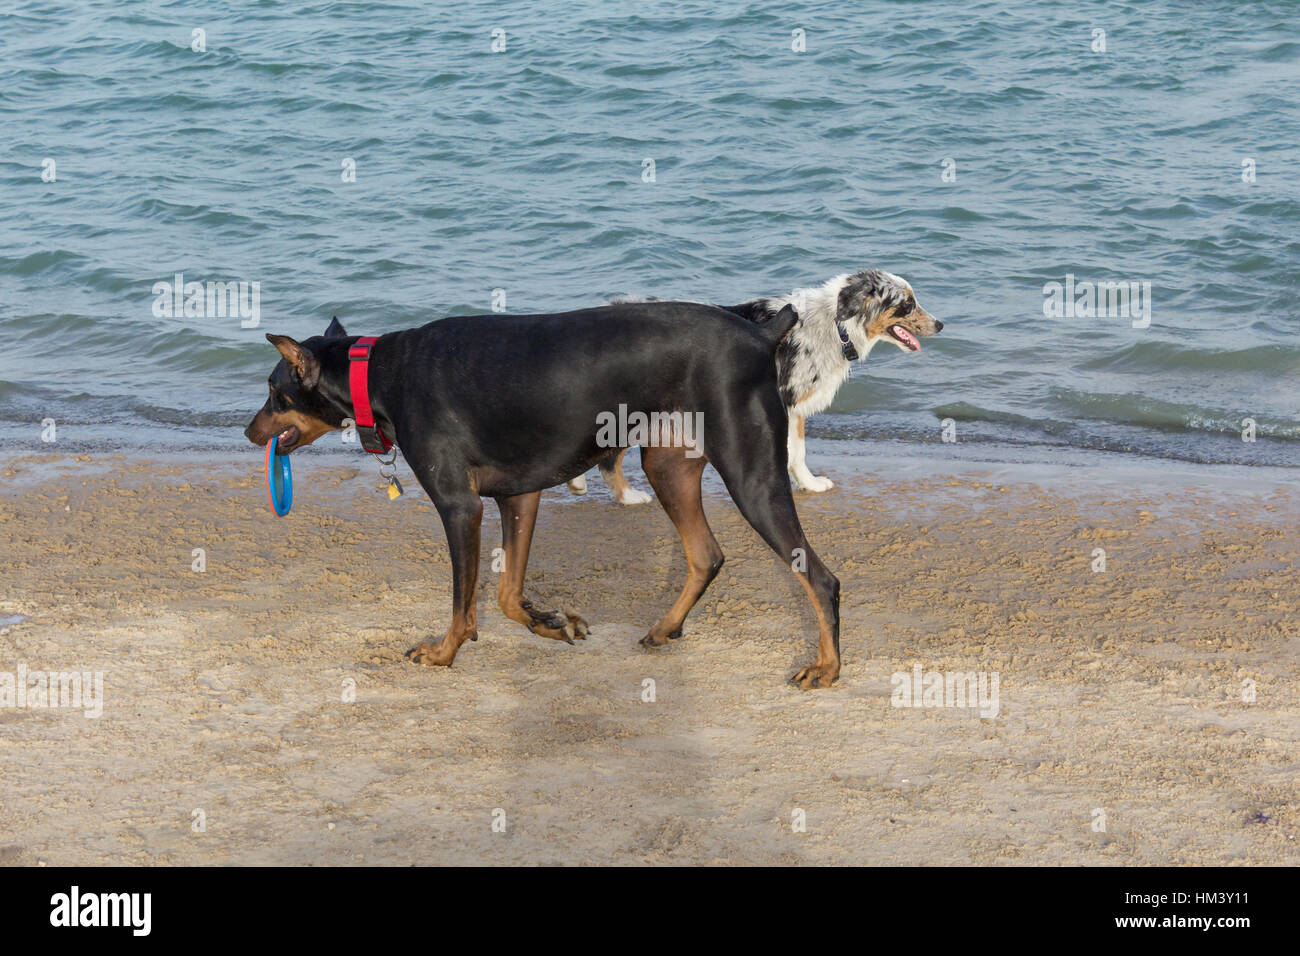 Austrailian shepherd mix and a wet doberman pinscher walking on a beach like two ships that pass in the night - Stock Image